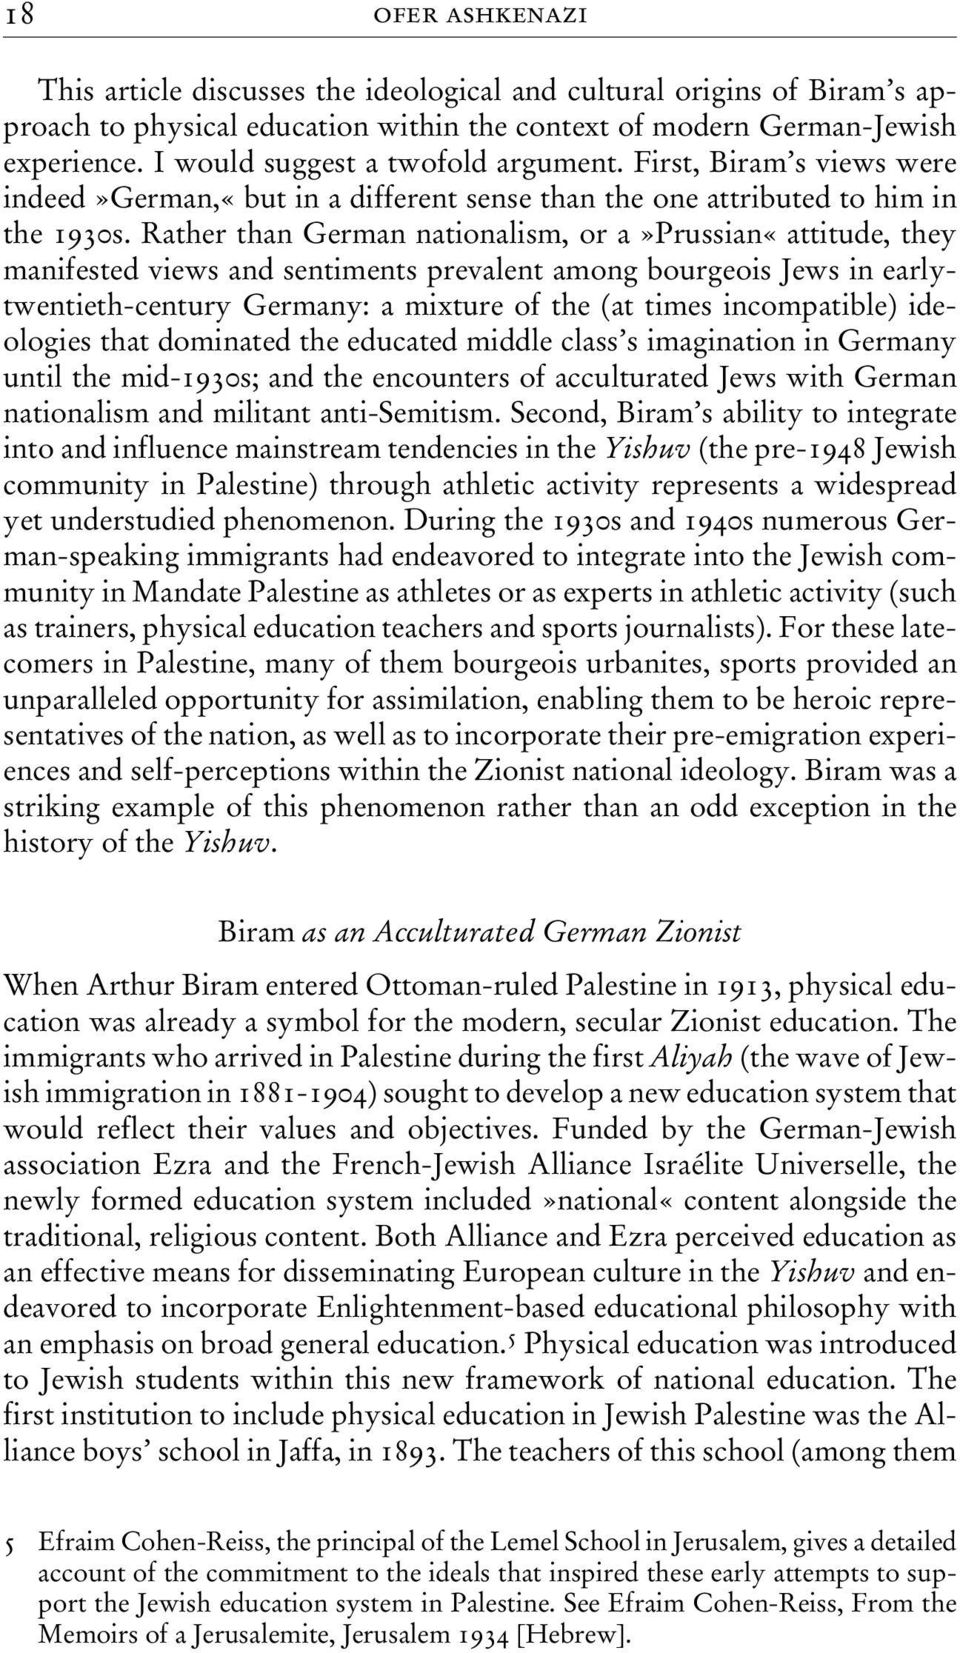 Rather than German nationalism, or a»prussian«attitude, they manifested views and sentiments prevalent among bourgeois Jews in earlytwentieth-century Germany: a mixture of the (at times incompatible)